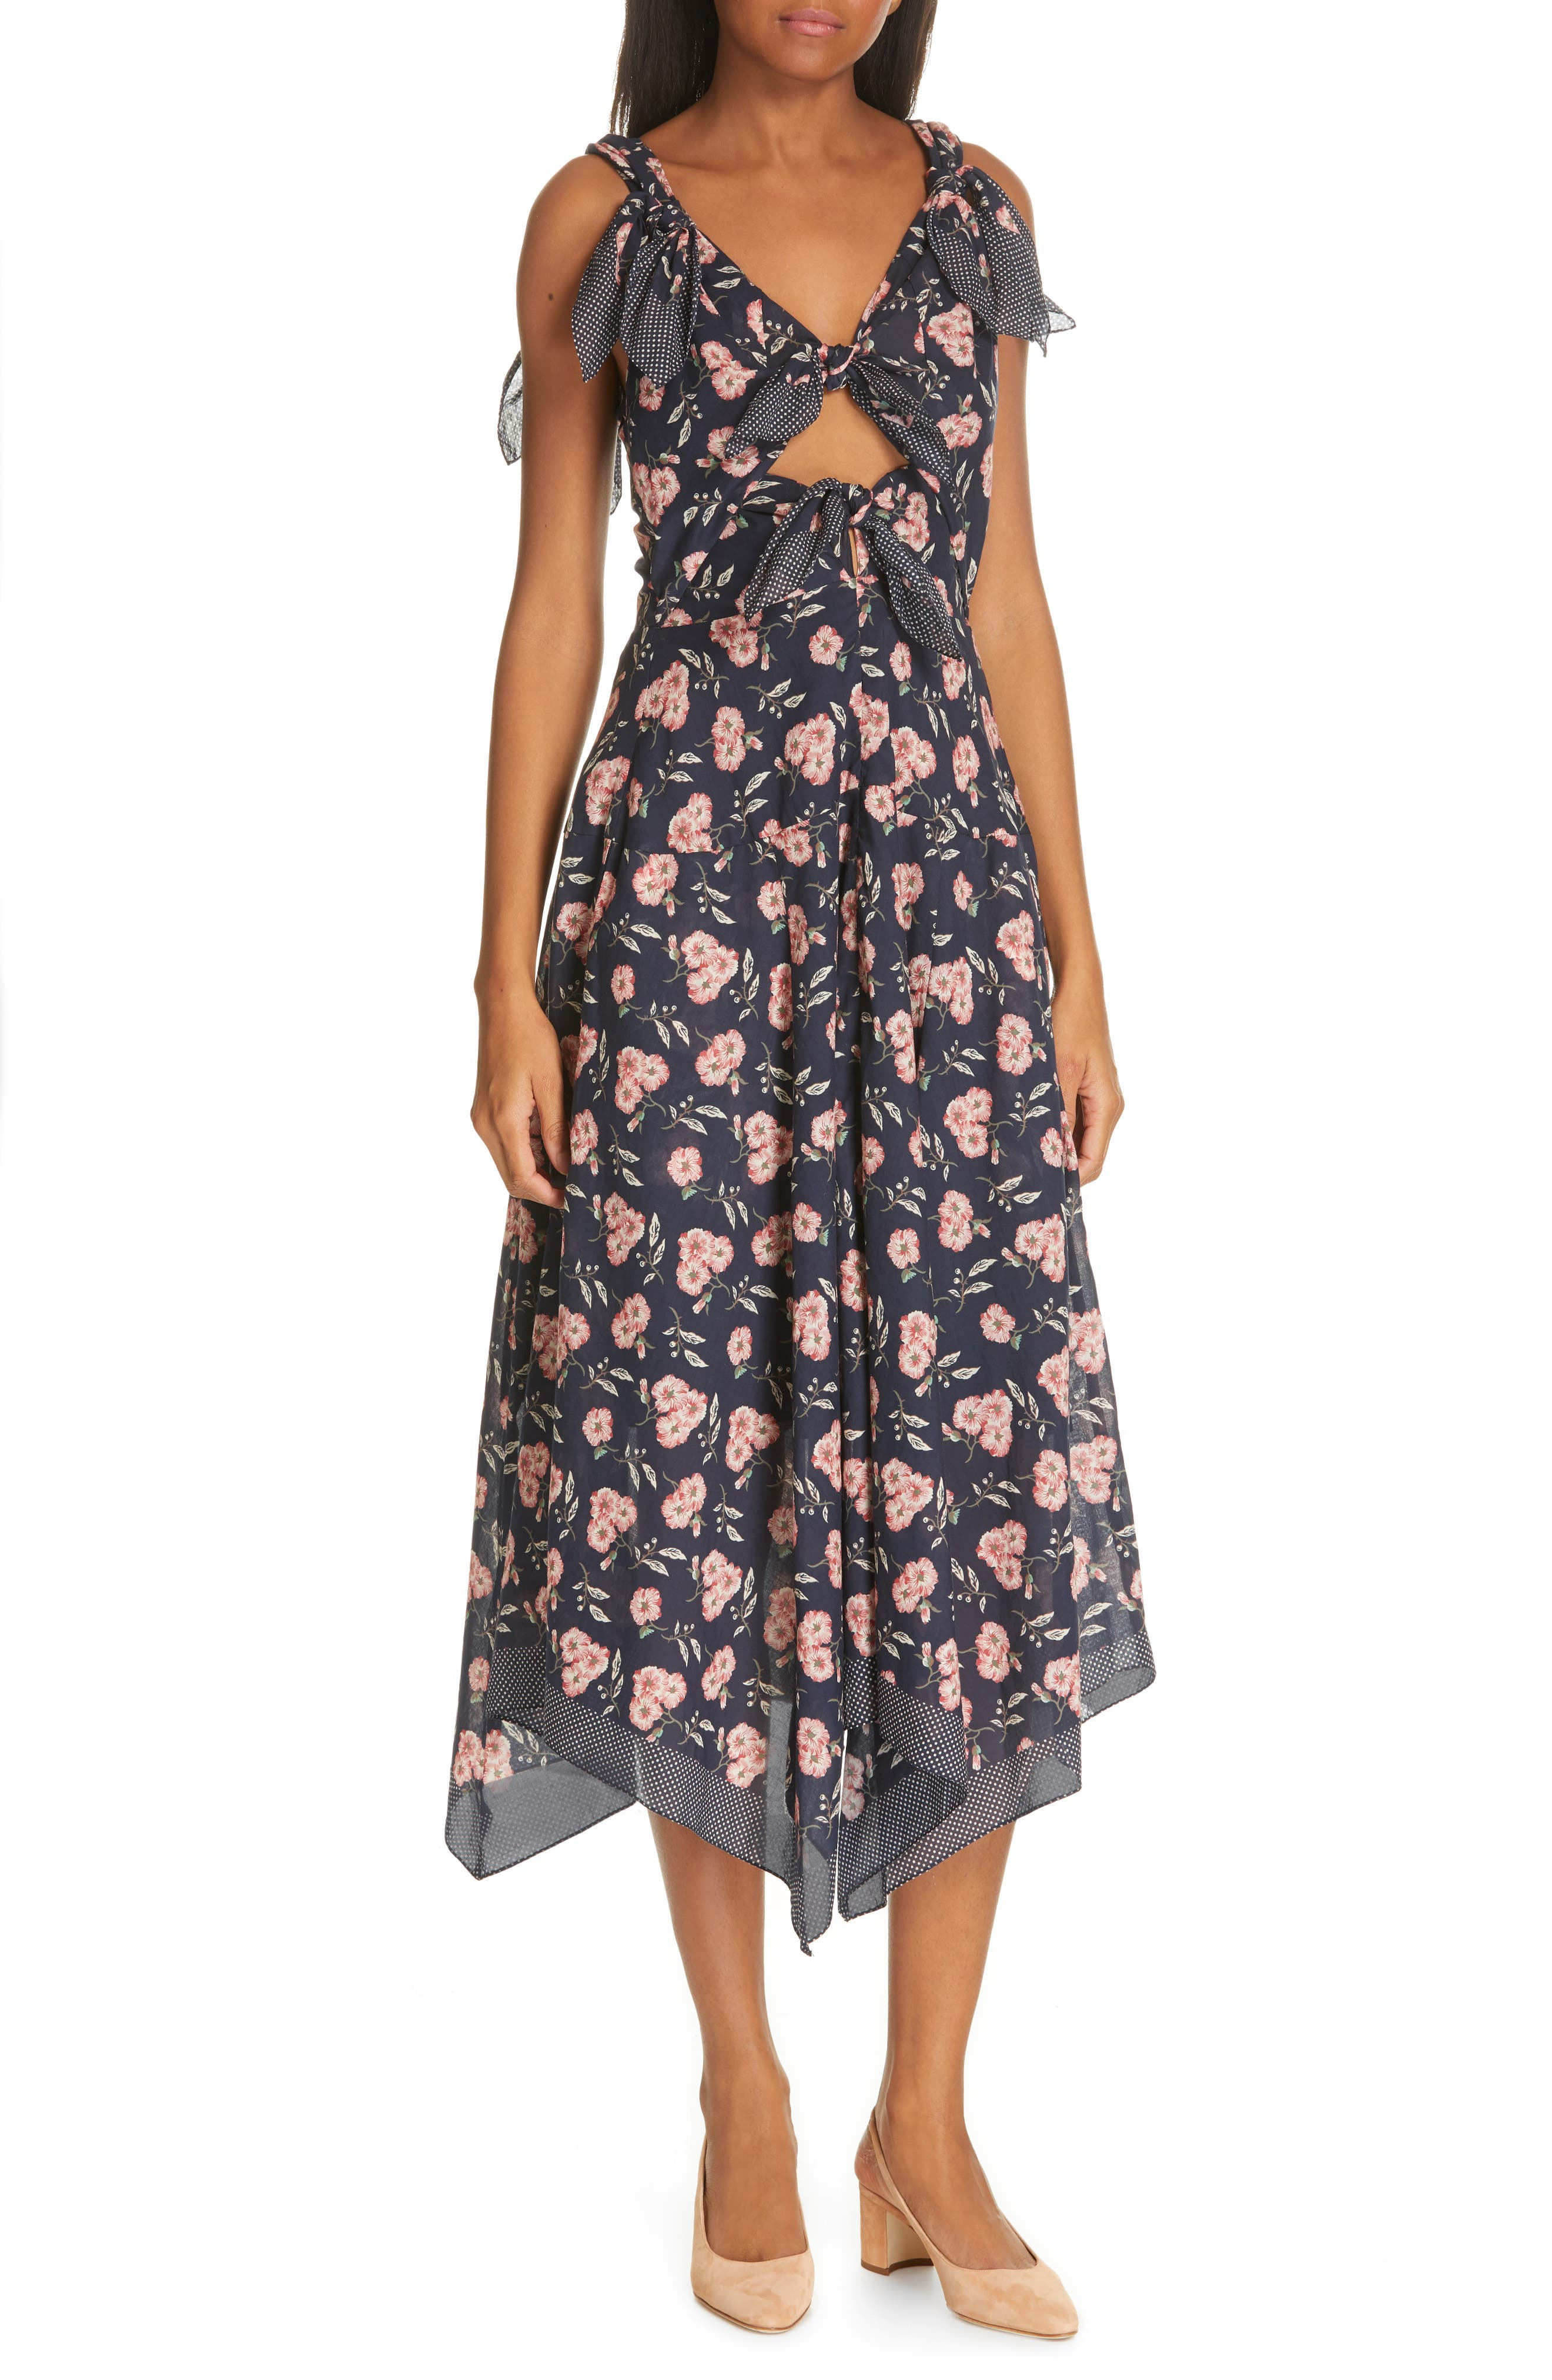 La Vie Rebecca Taylor Adelle Floral Tie Detail Dress, Blue